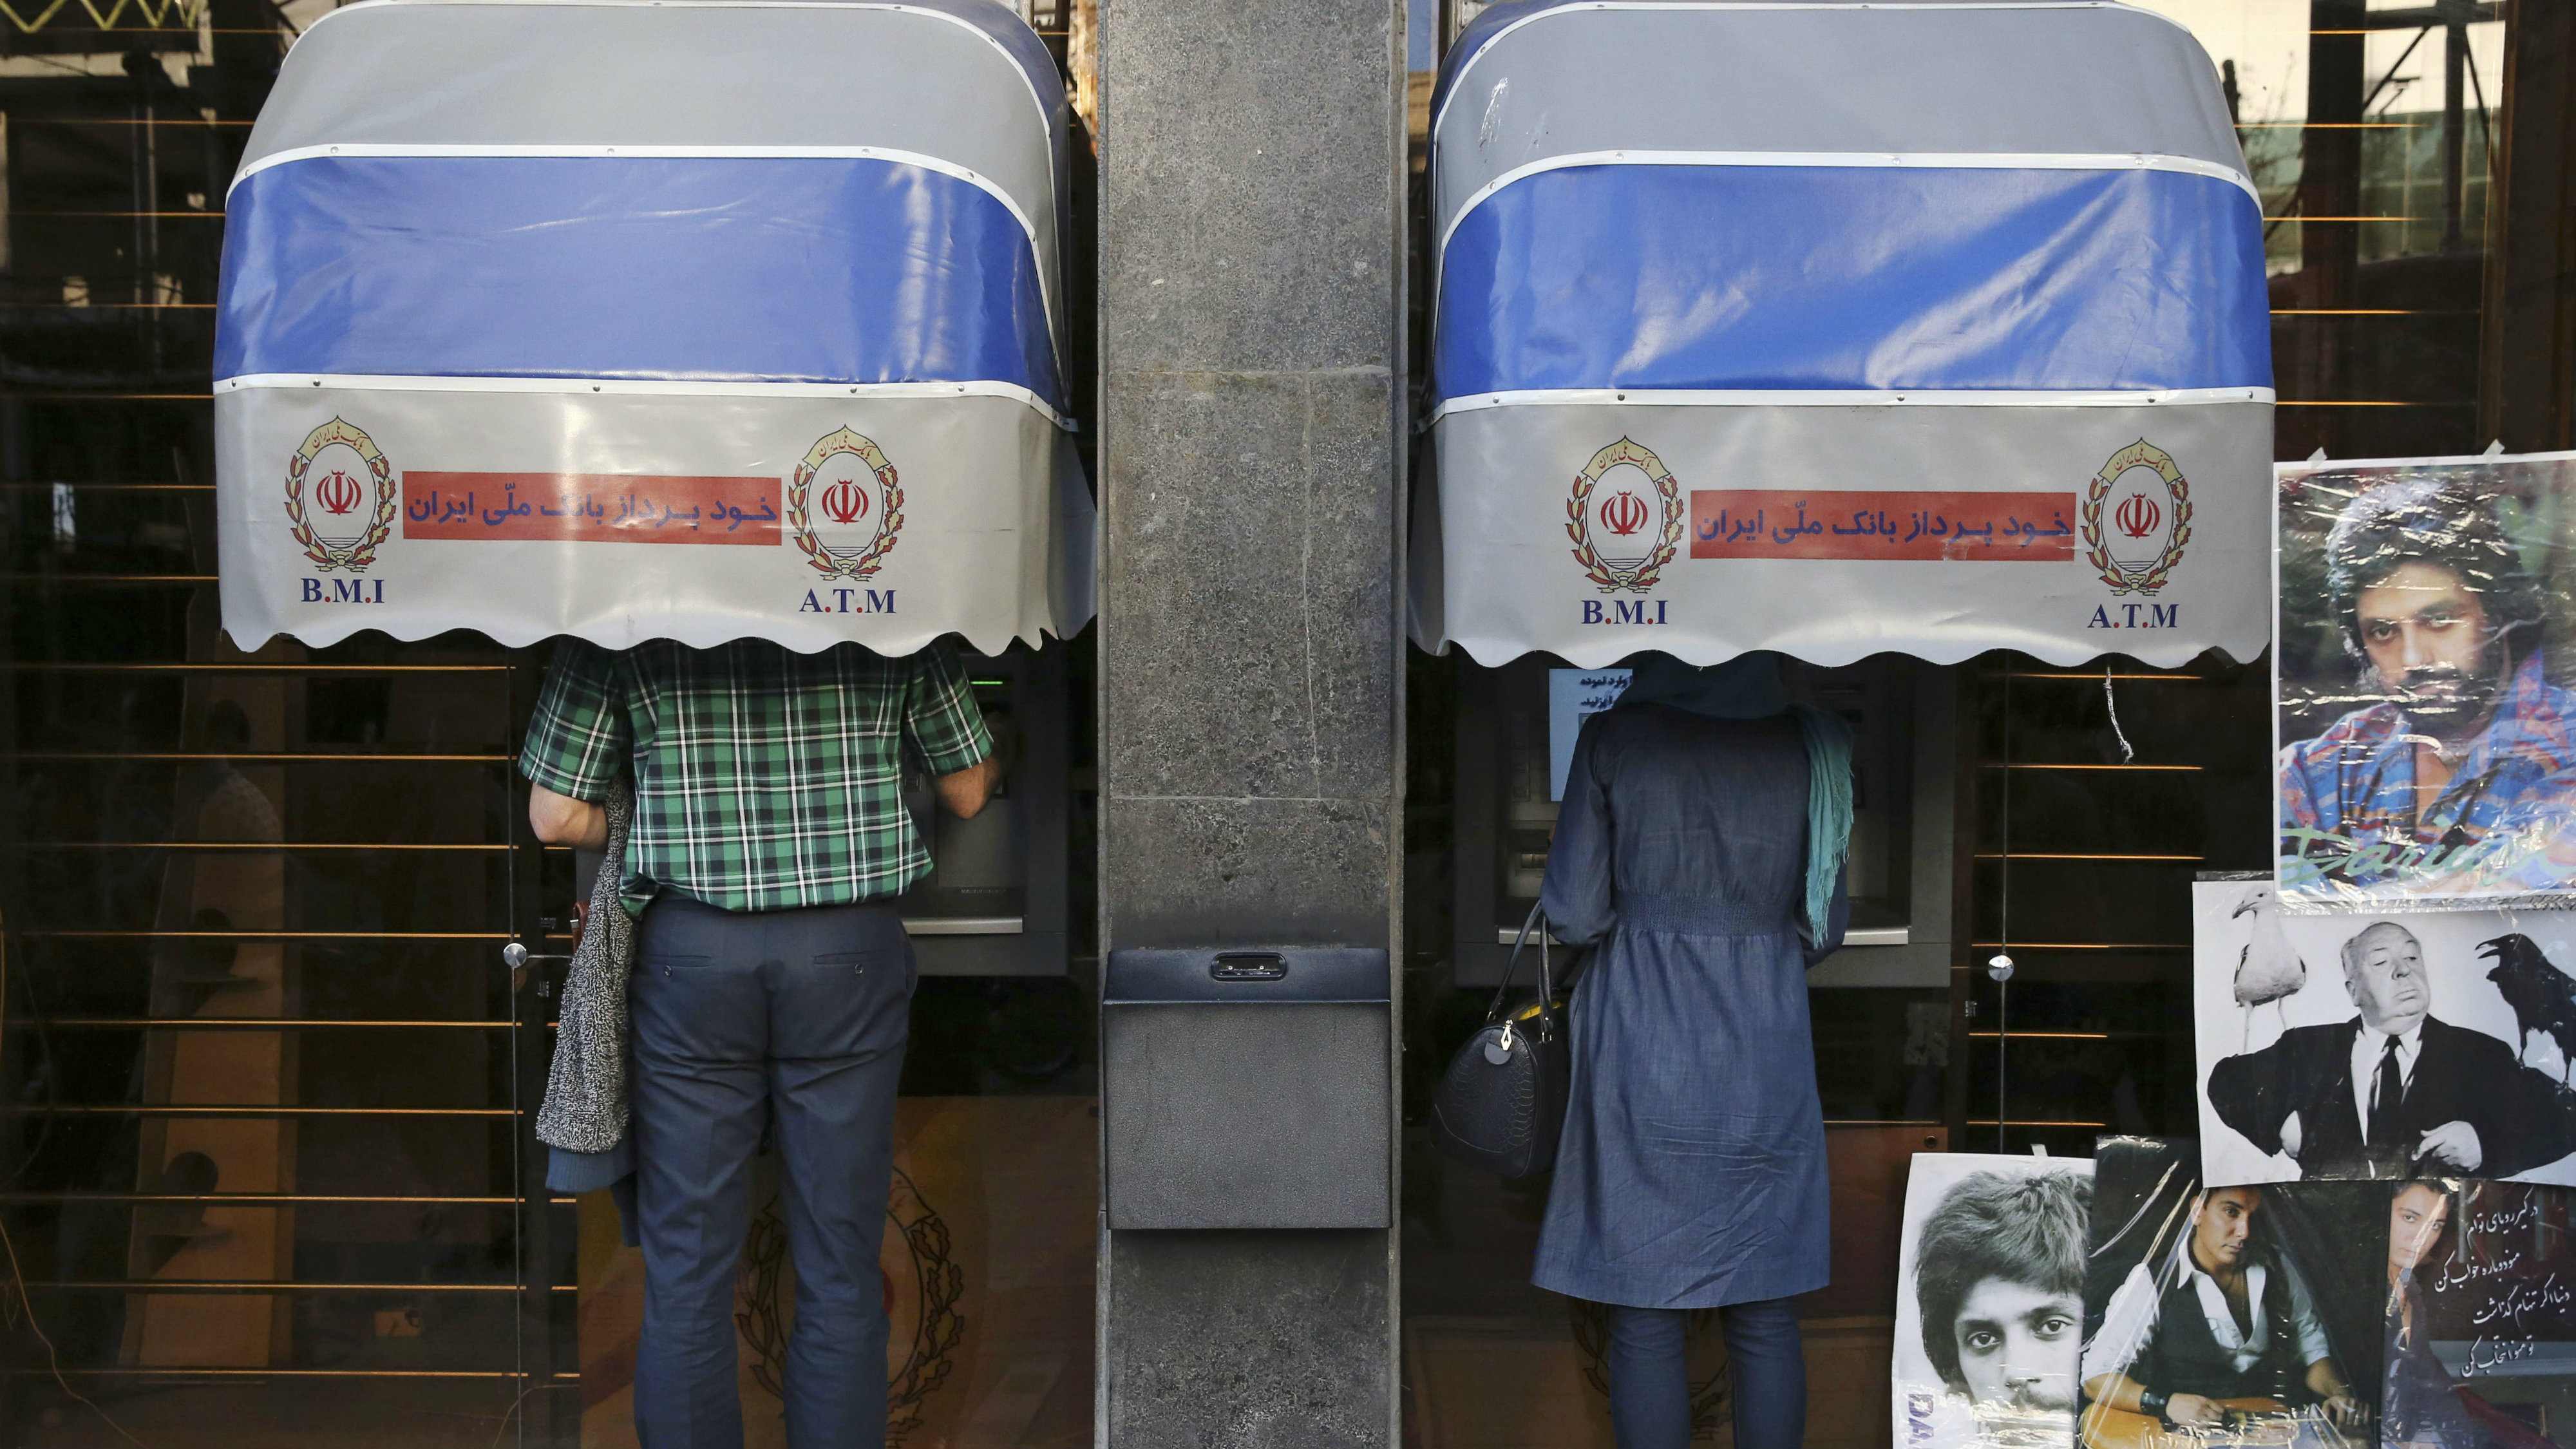 In this April 4, 2015 file photo, Iranians use ATM machines of Bank Melli Iran in downtown Tehran, Iran. Iranian media are saying the country's banks will begin issuing credit cards for the first time in decades. Reports by several newspapers, including the daily Donya-e-Eqtesad, Monday, Sept. 26, 2016 said the cards will be for domestic use only and do not involve any sort of partnership with a major international credit card company. So far, Iranian banks have only issued debit and prepaid cards.